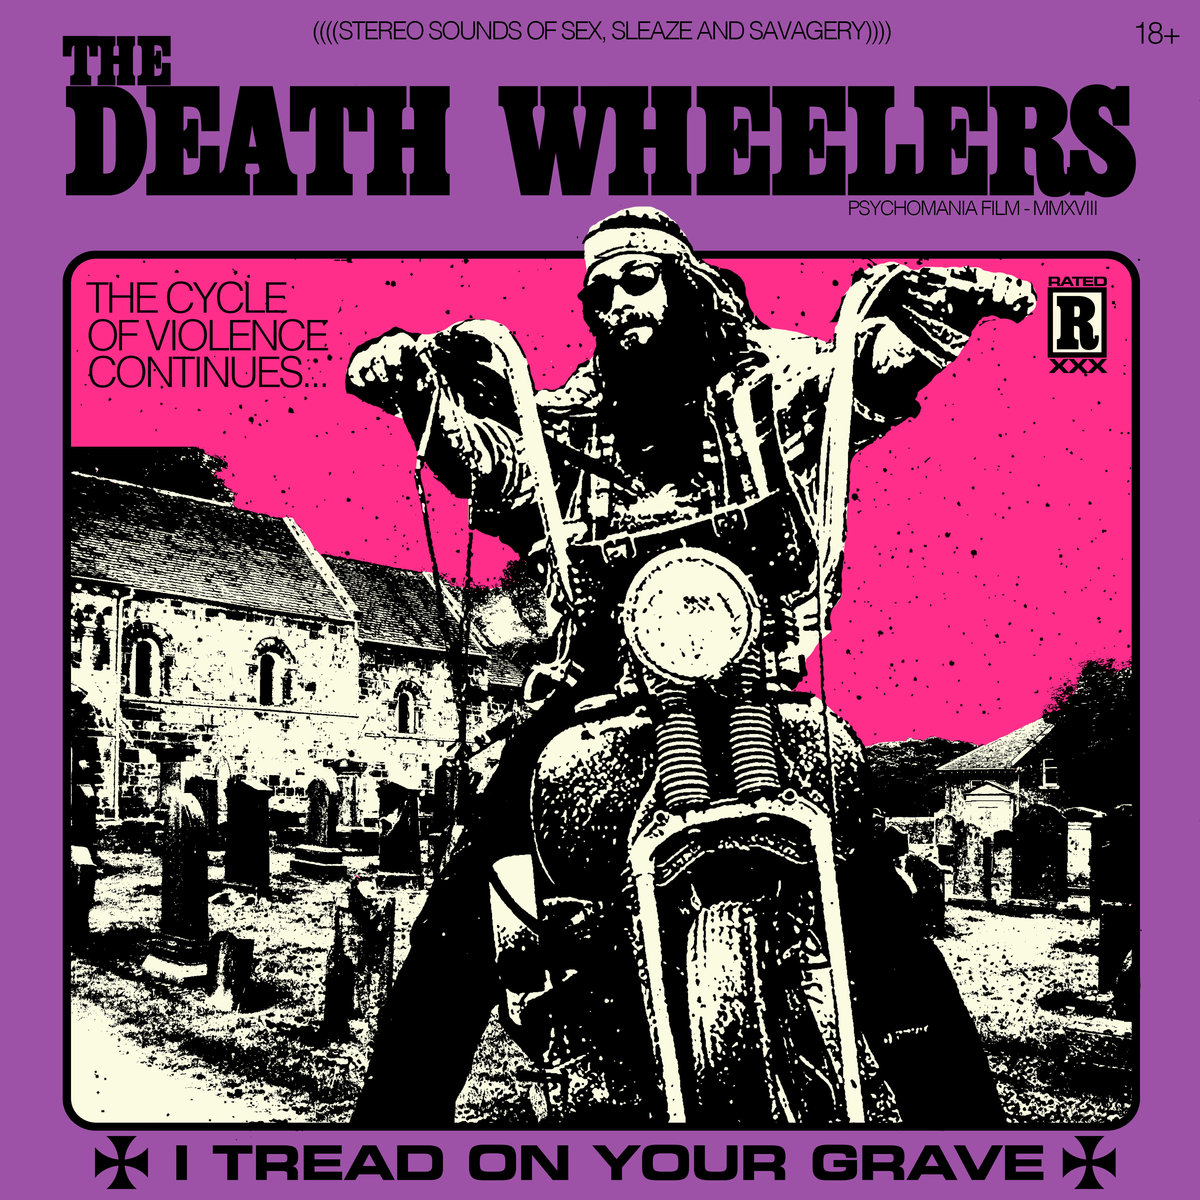 I Tread on Your Grave by The Death Wheelers